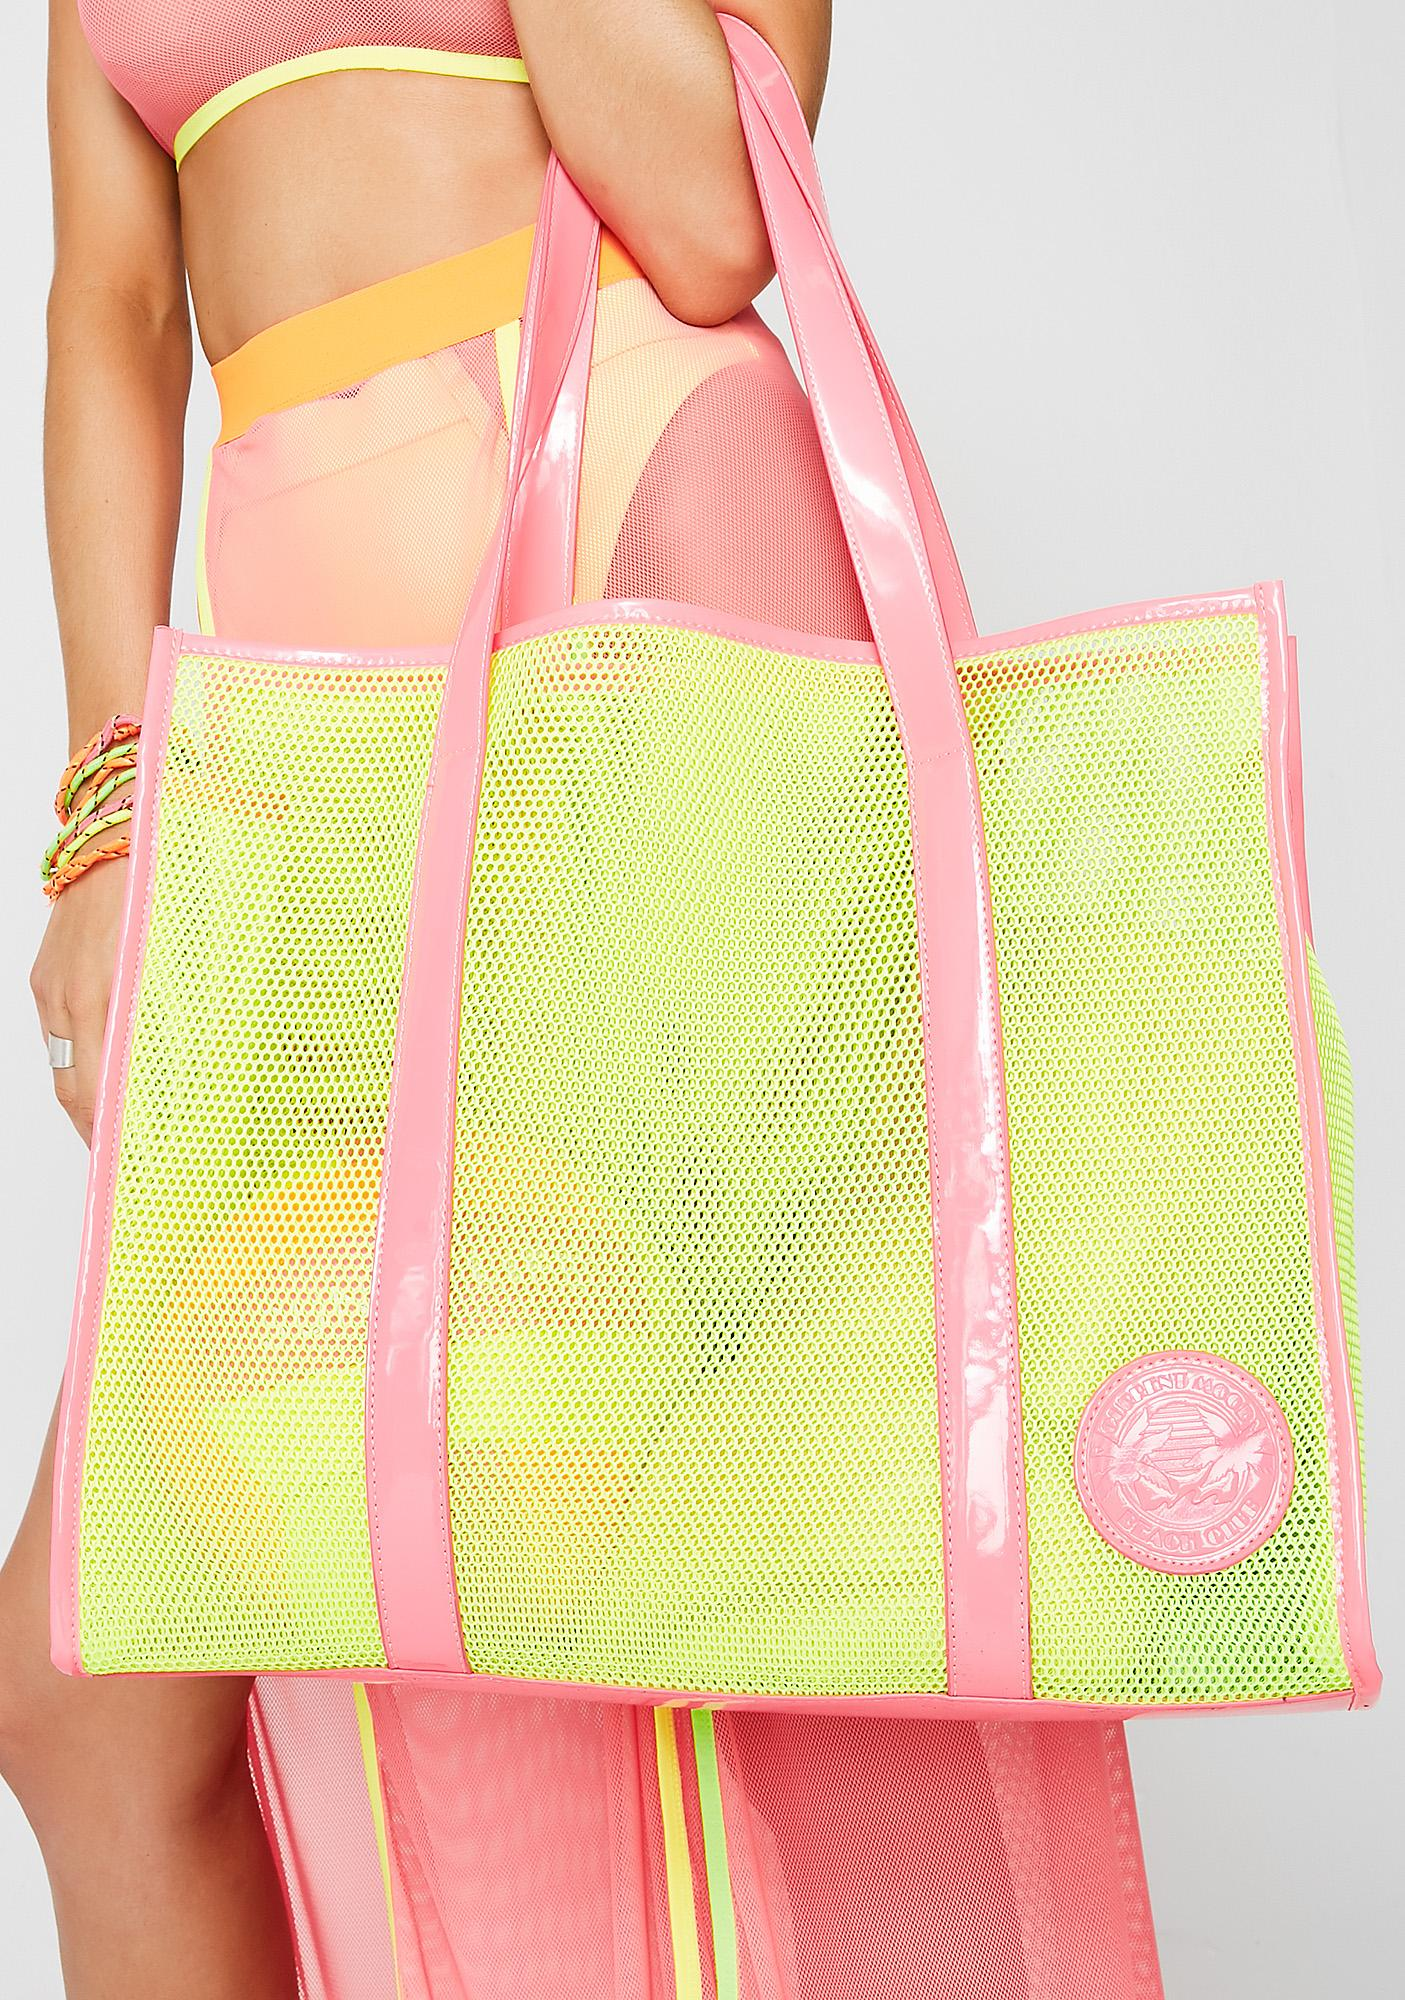 Current Mood Catchin' Rays Tote Bag